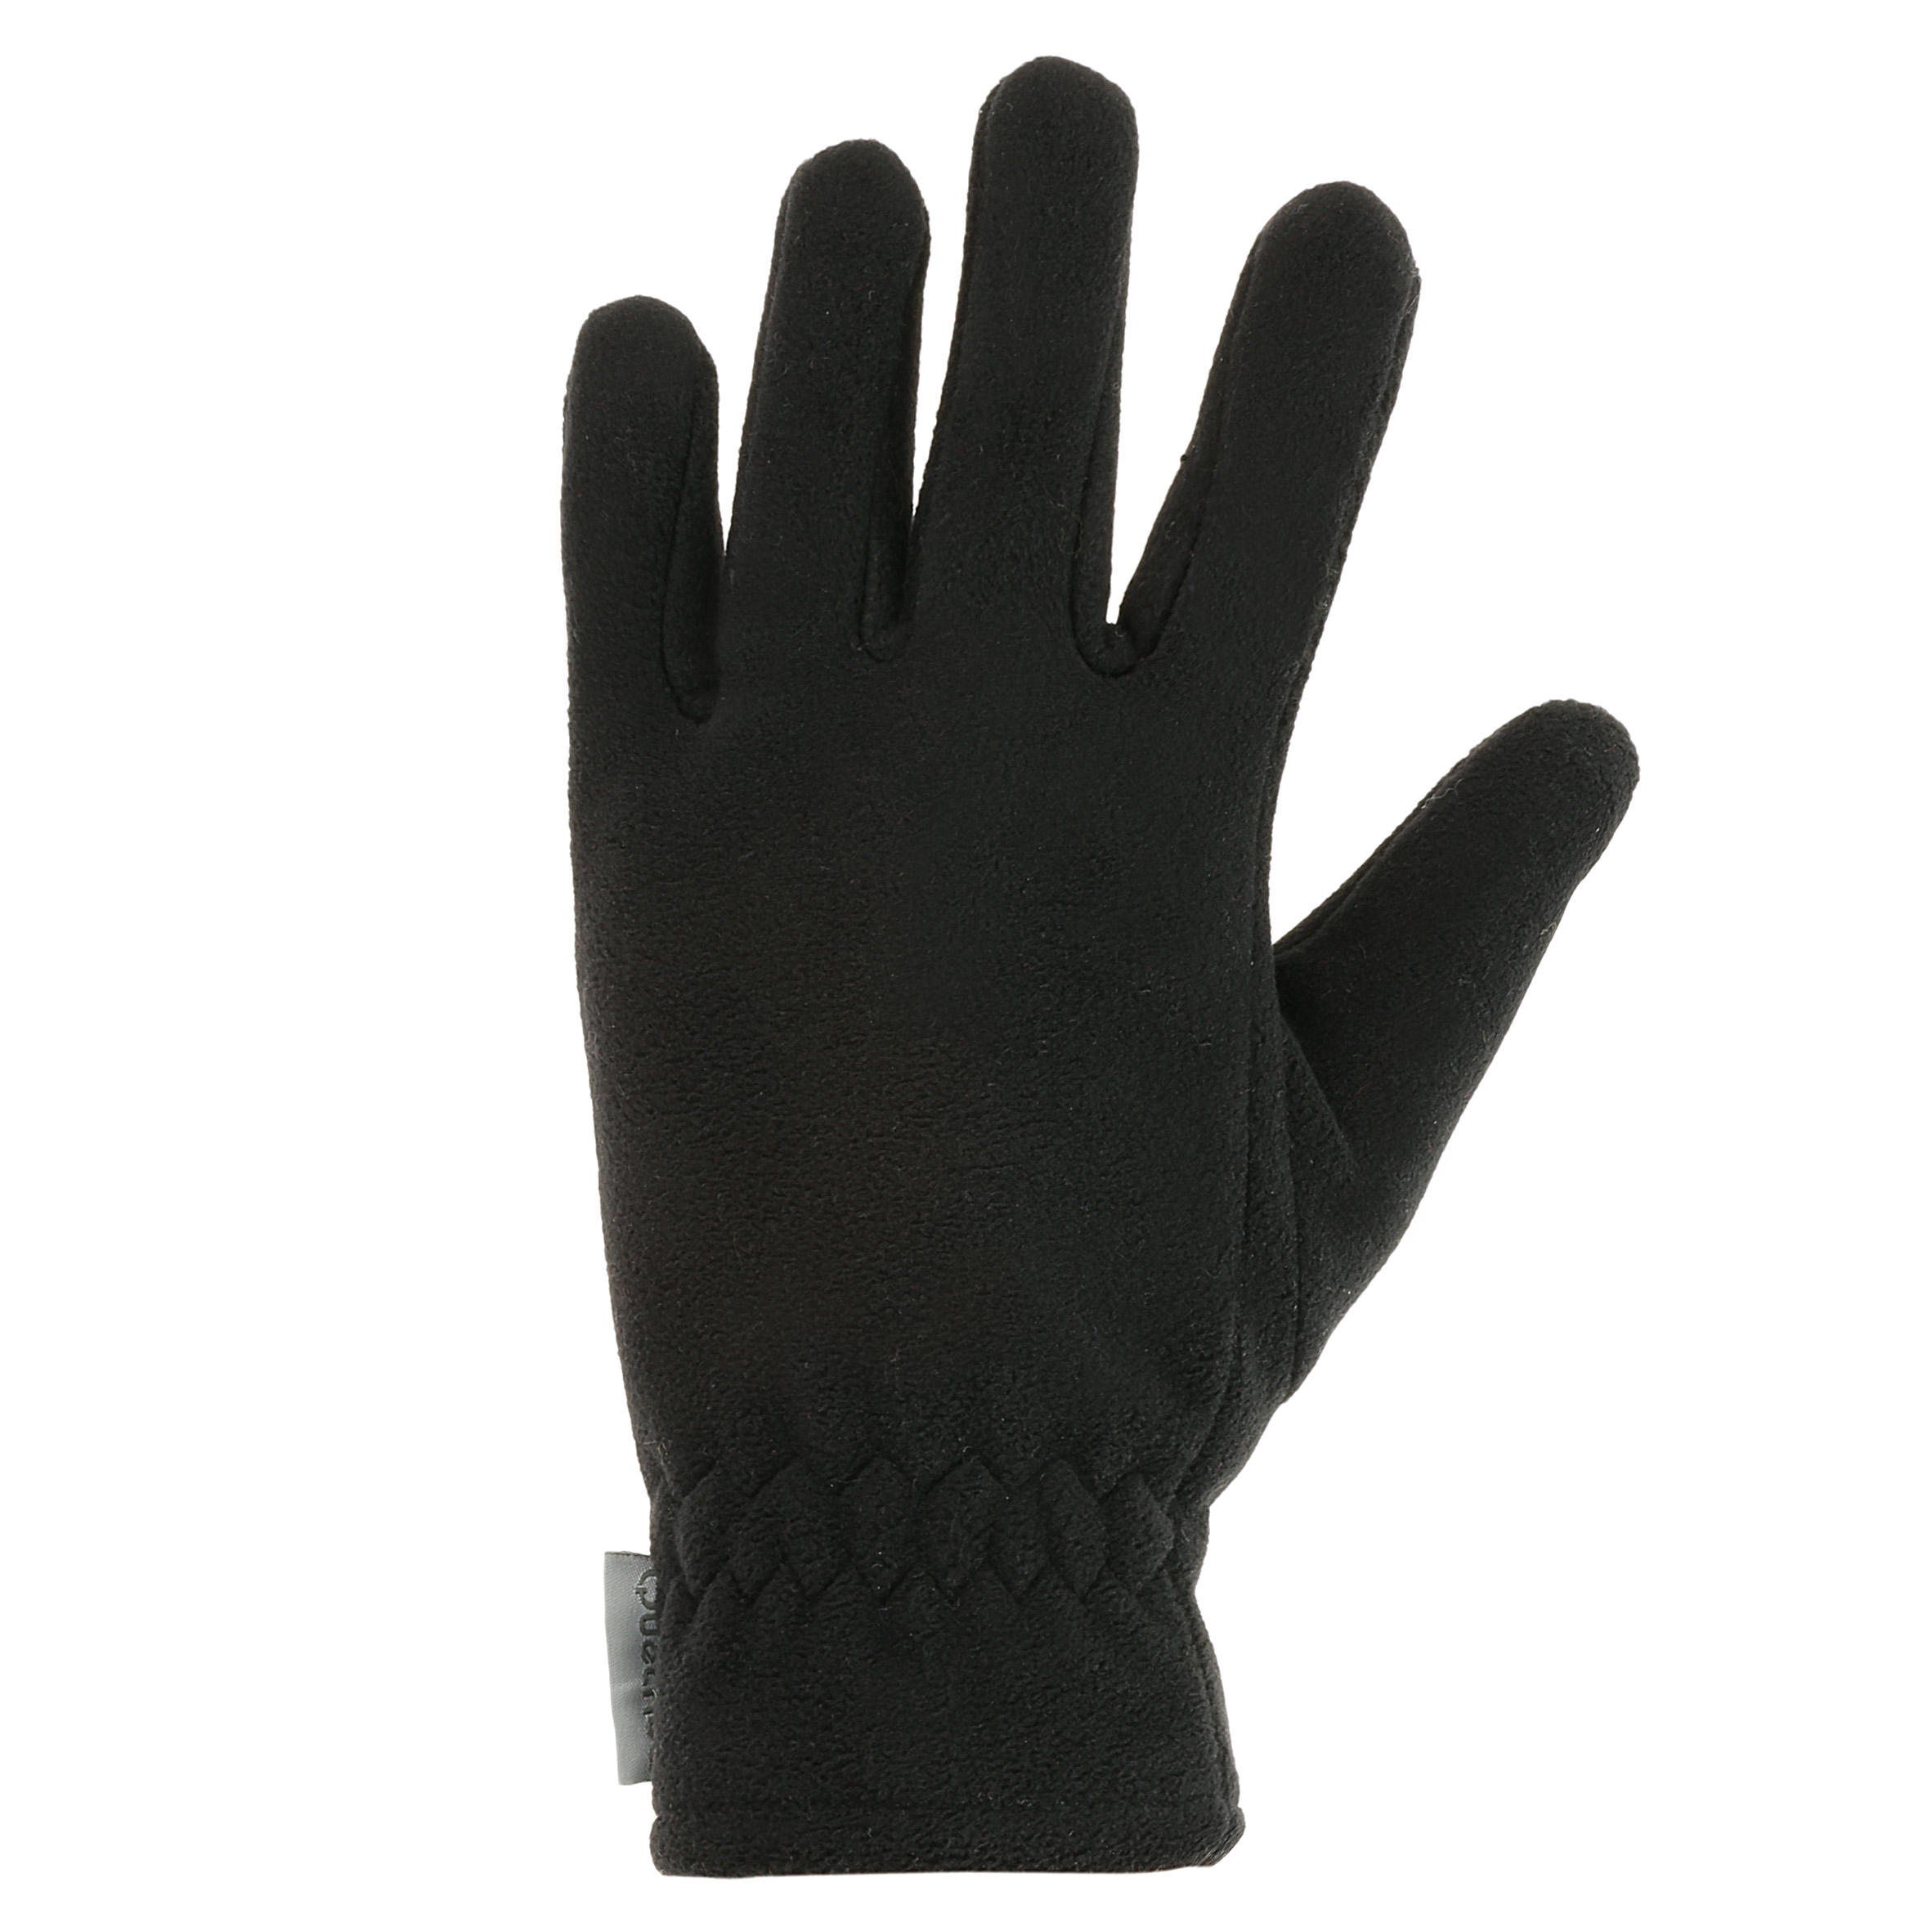 SH100 warm black junior hiking fleece gloves